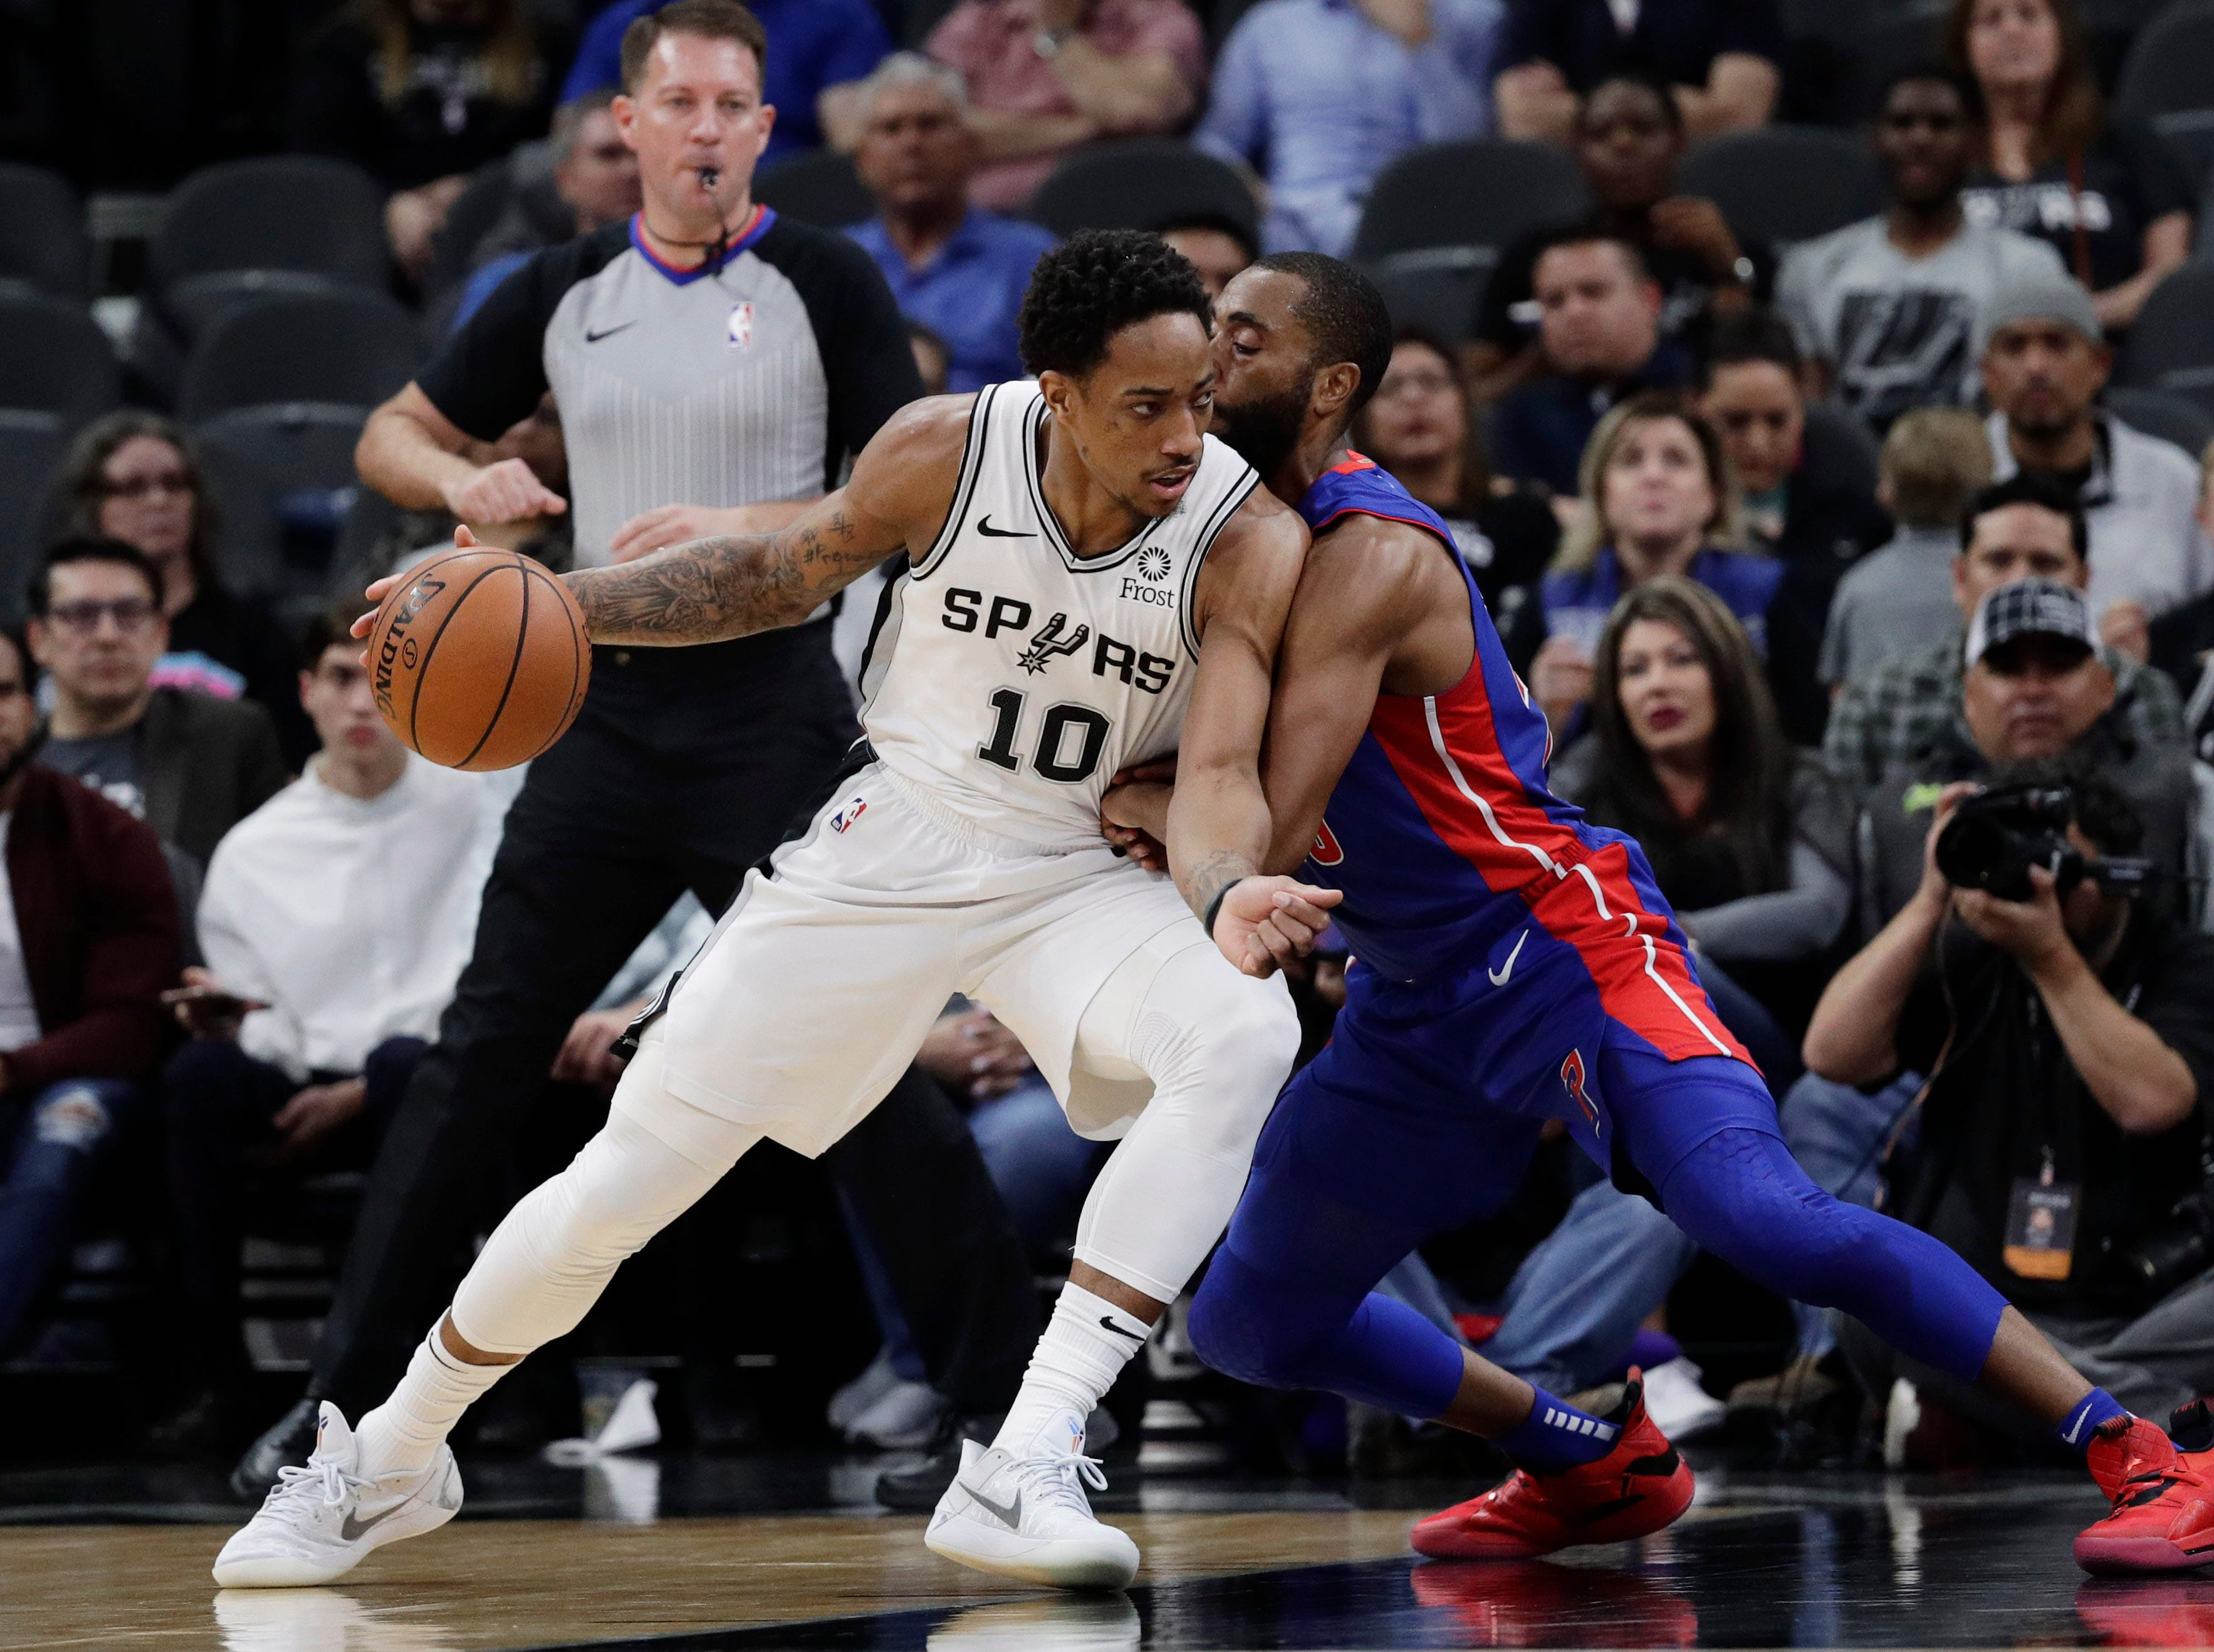 San Antonio Spurs guard DeMar DeRozan (10) is defended by Detroit Pistons guard Wayne Ellington during the first half.